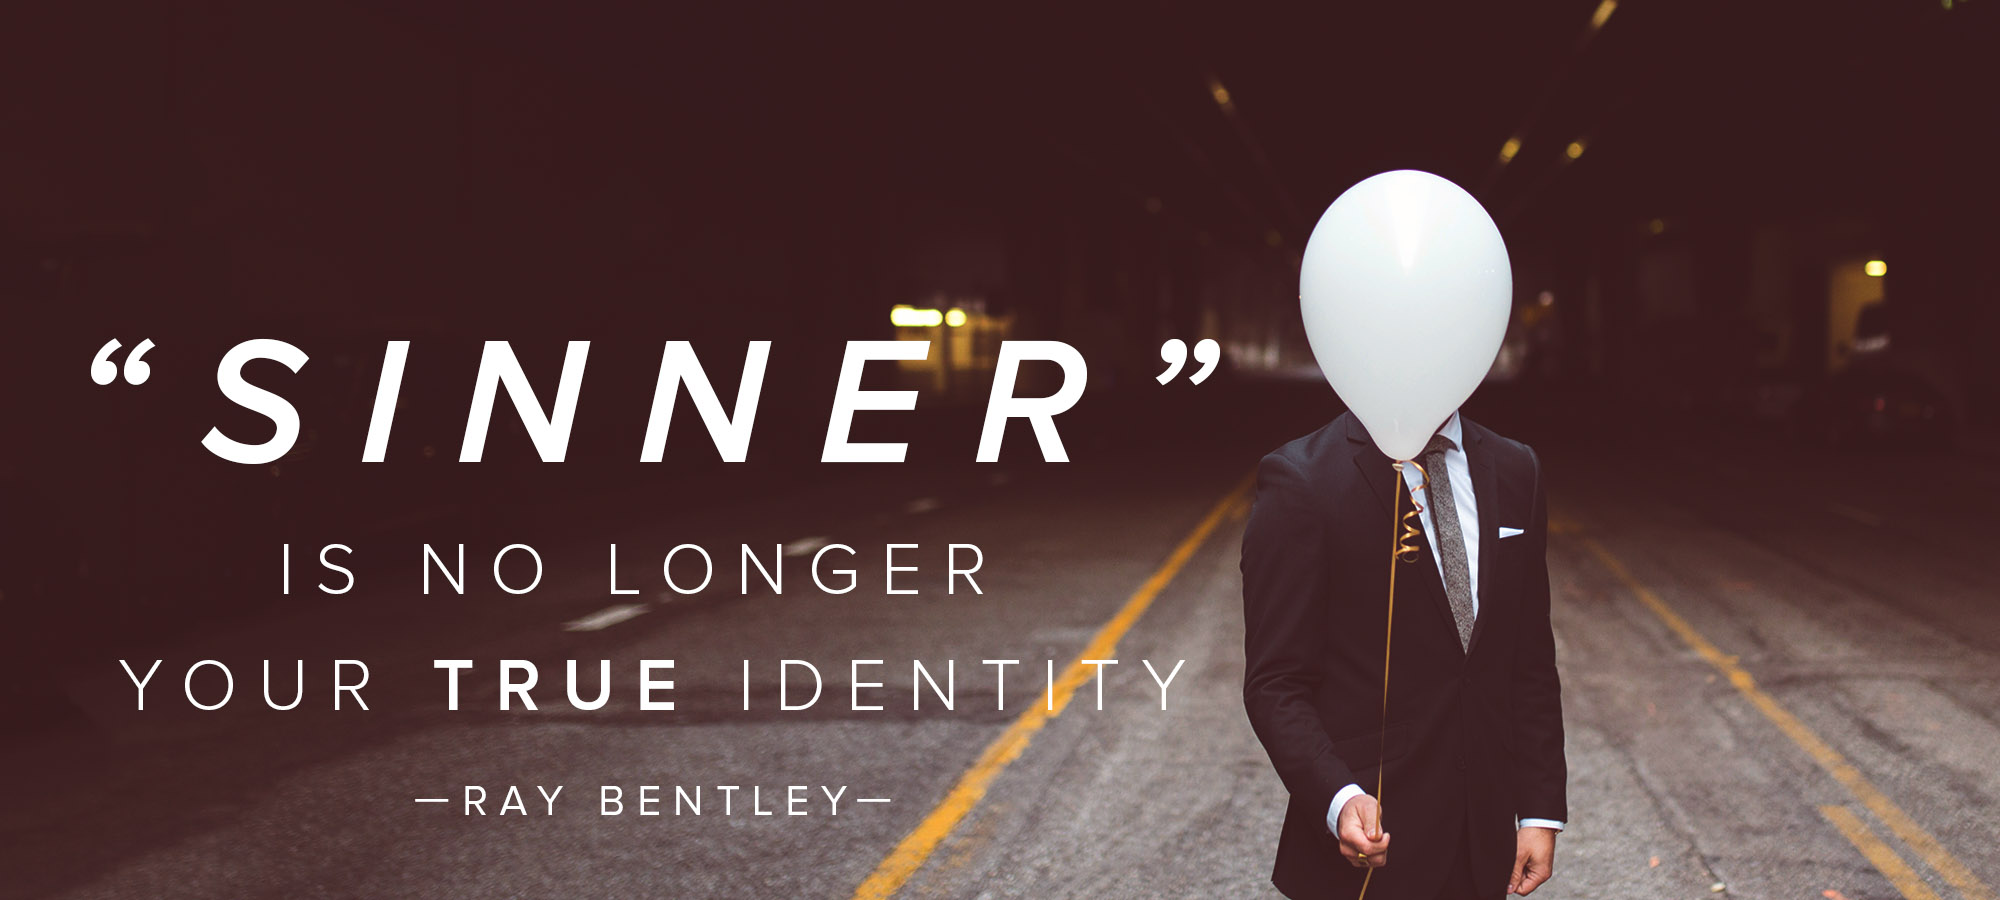 """Sinner"" is No Longer Your True Identity"